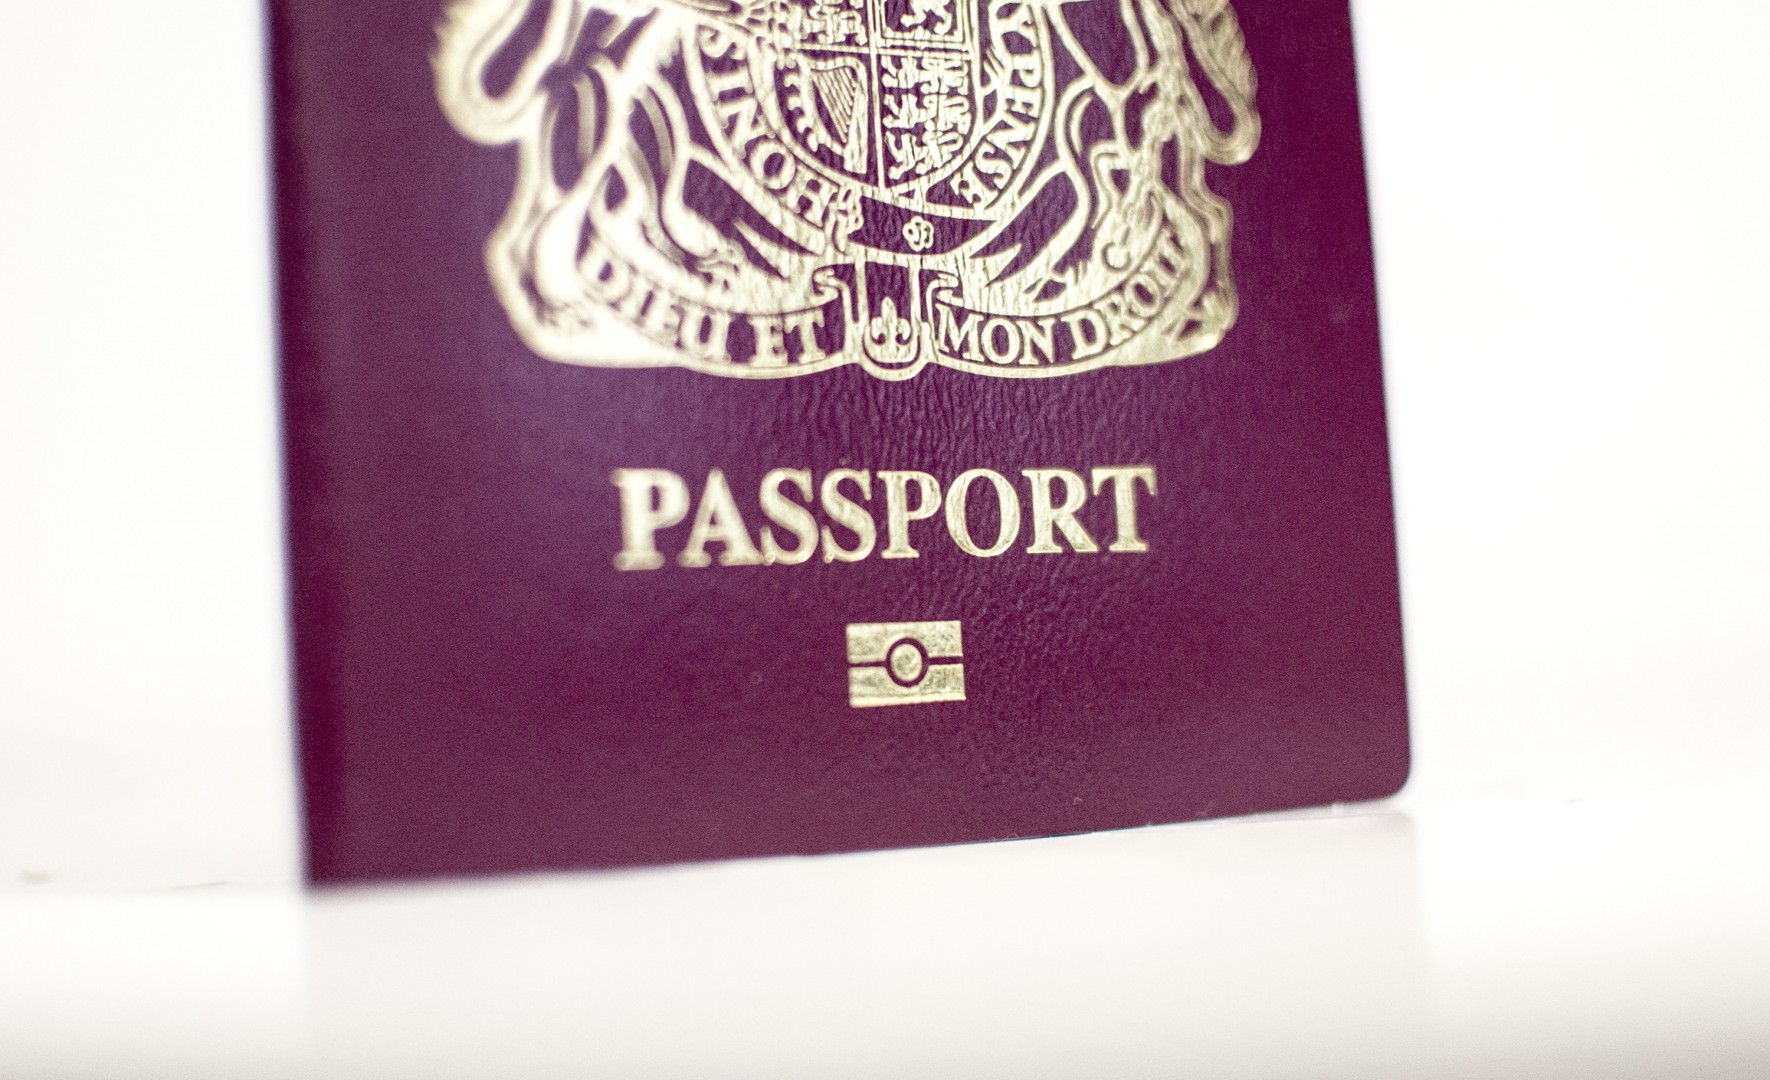 Embargoed to 0001 Monday October 10  File photo dated 03/01/16 of a British passport, which is 10 times more likely to be lost or stolen within this country than overseas, new figures show. PRESS ASSOCIATION Photo. Issue date: Monday October 10, 2016. Some 300,000 passports were recorded as missing in 2014/15, but just 7% were reported through embassies overseas. See PA story TRAVEL Passport. Photo credit should read: Anthony Devlin/PA Wire